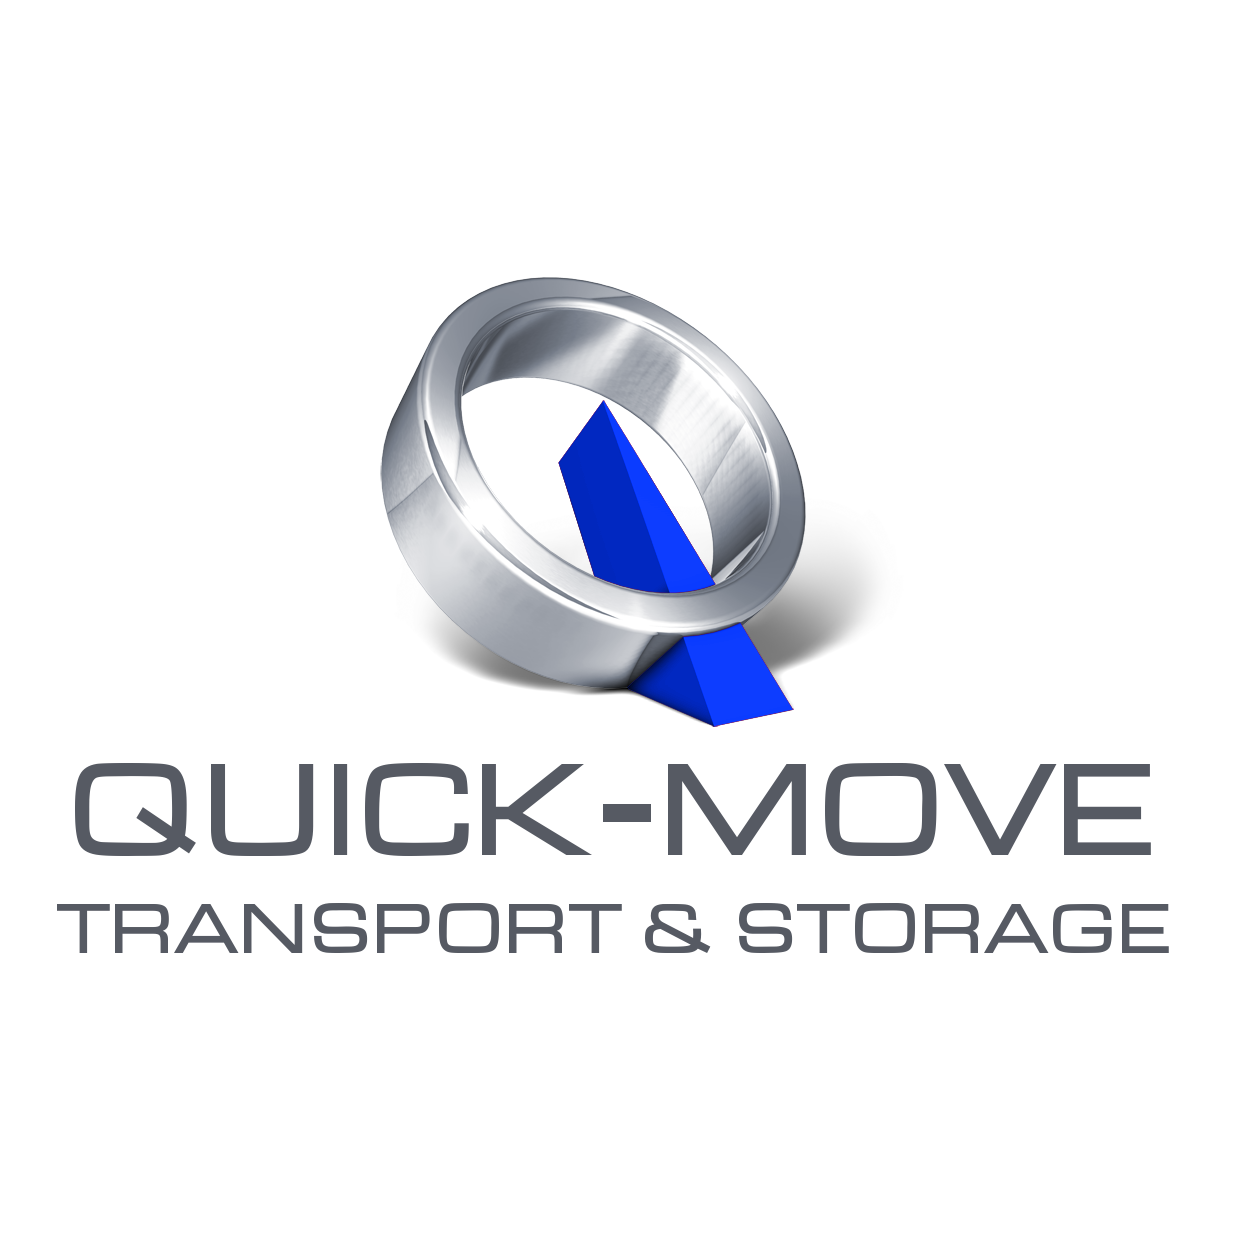 Quick Move Transport is rated one of the best local moving companies around with more than a decade of experience.